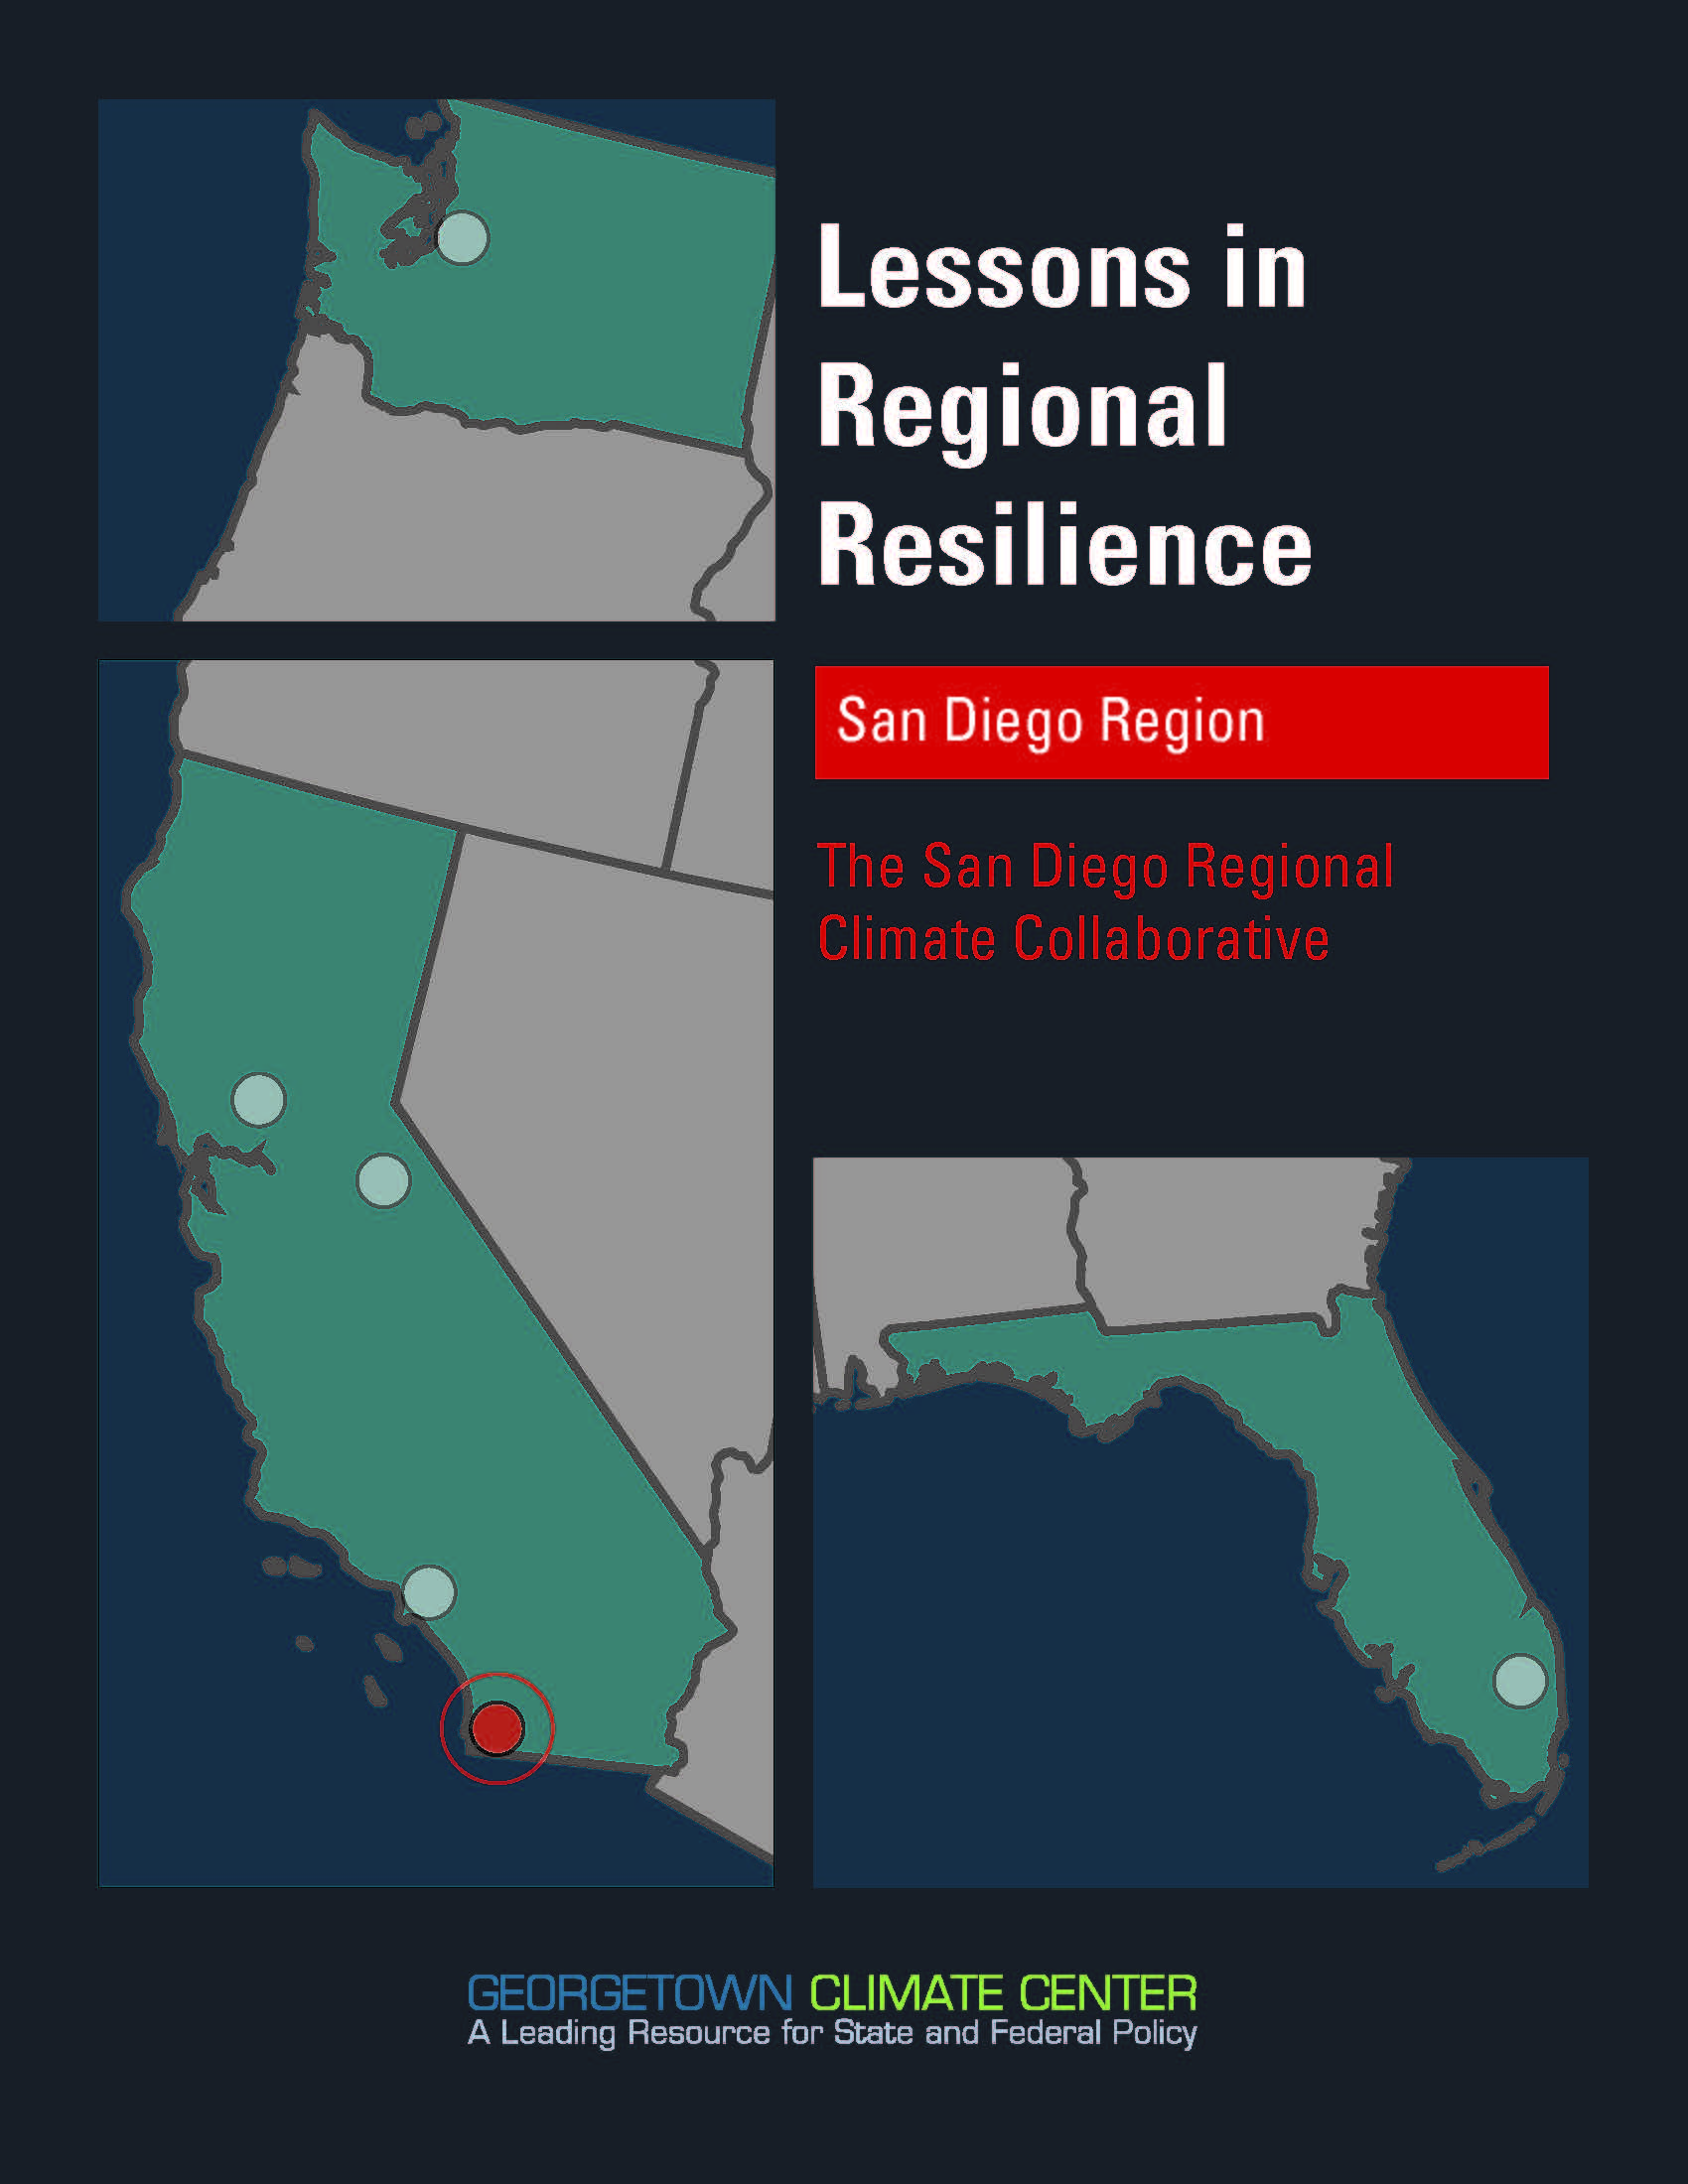 Lessons in Regional Resilience: The San Diego Regional Climate Collaborative